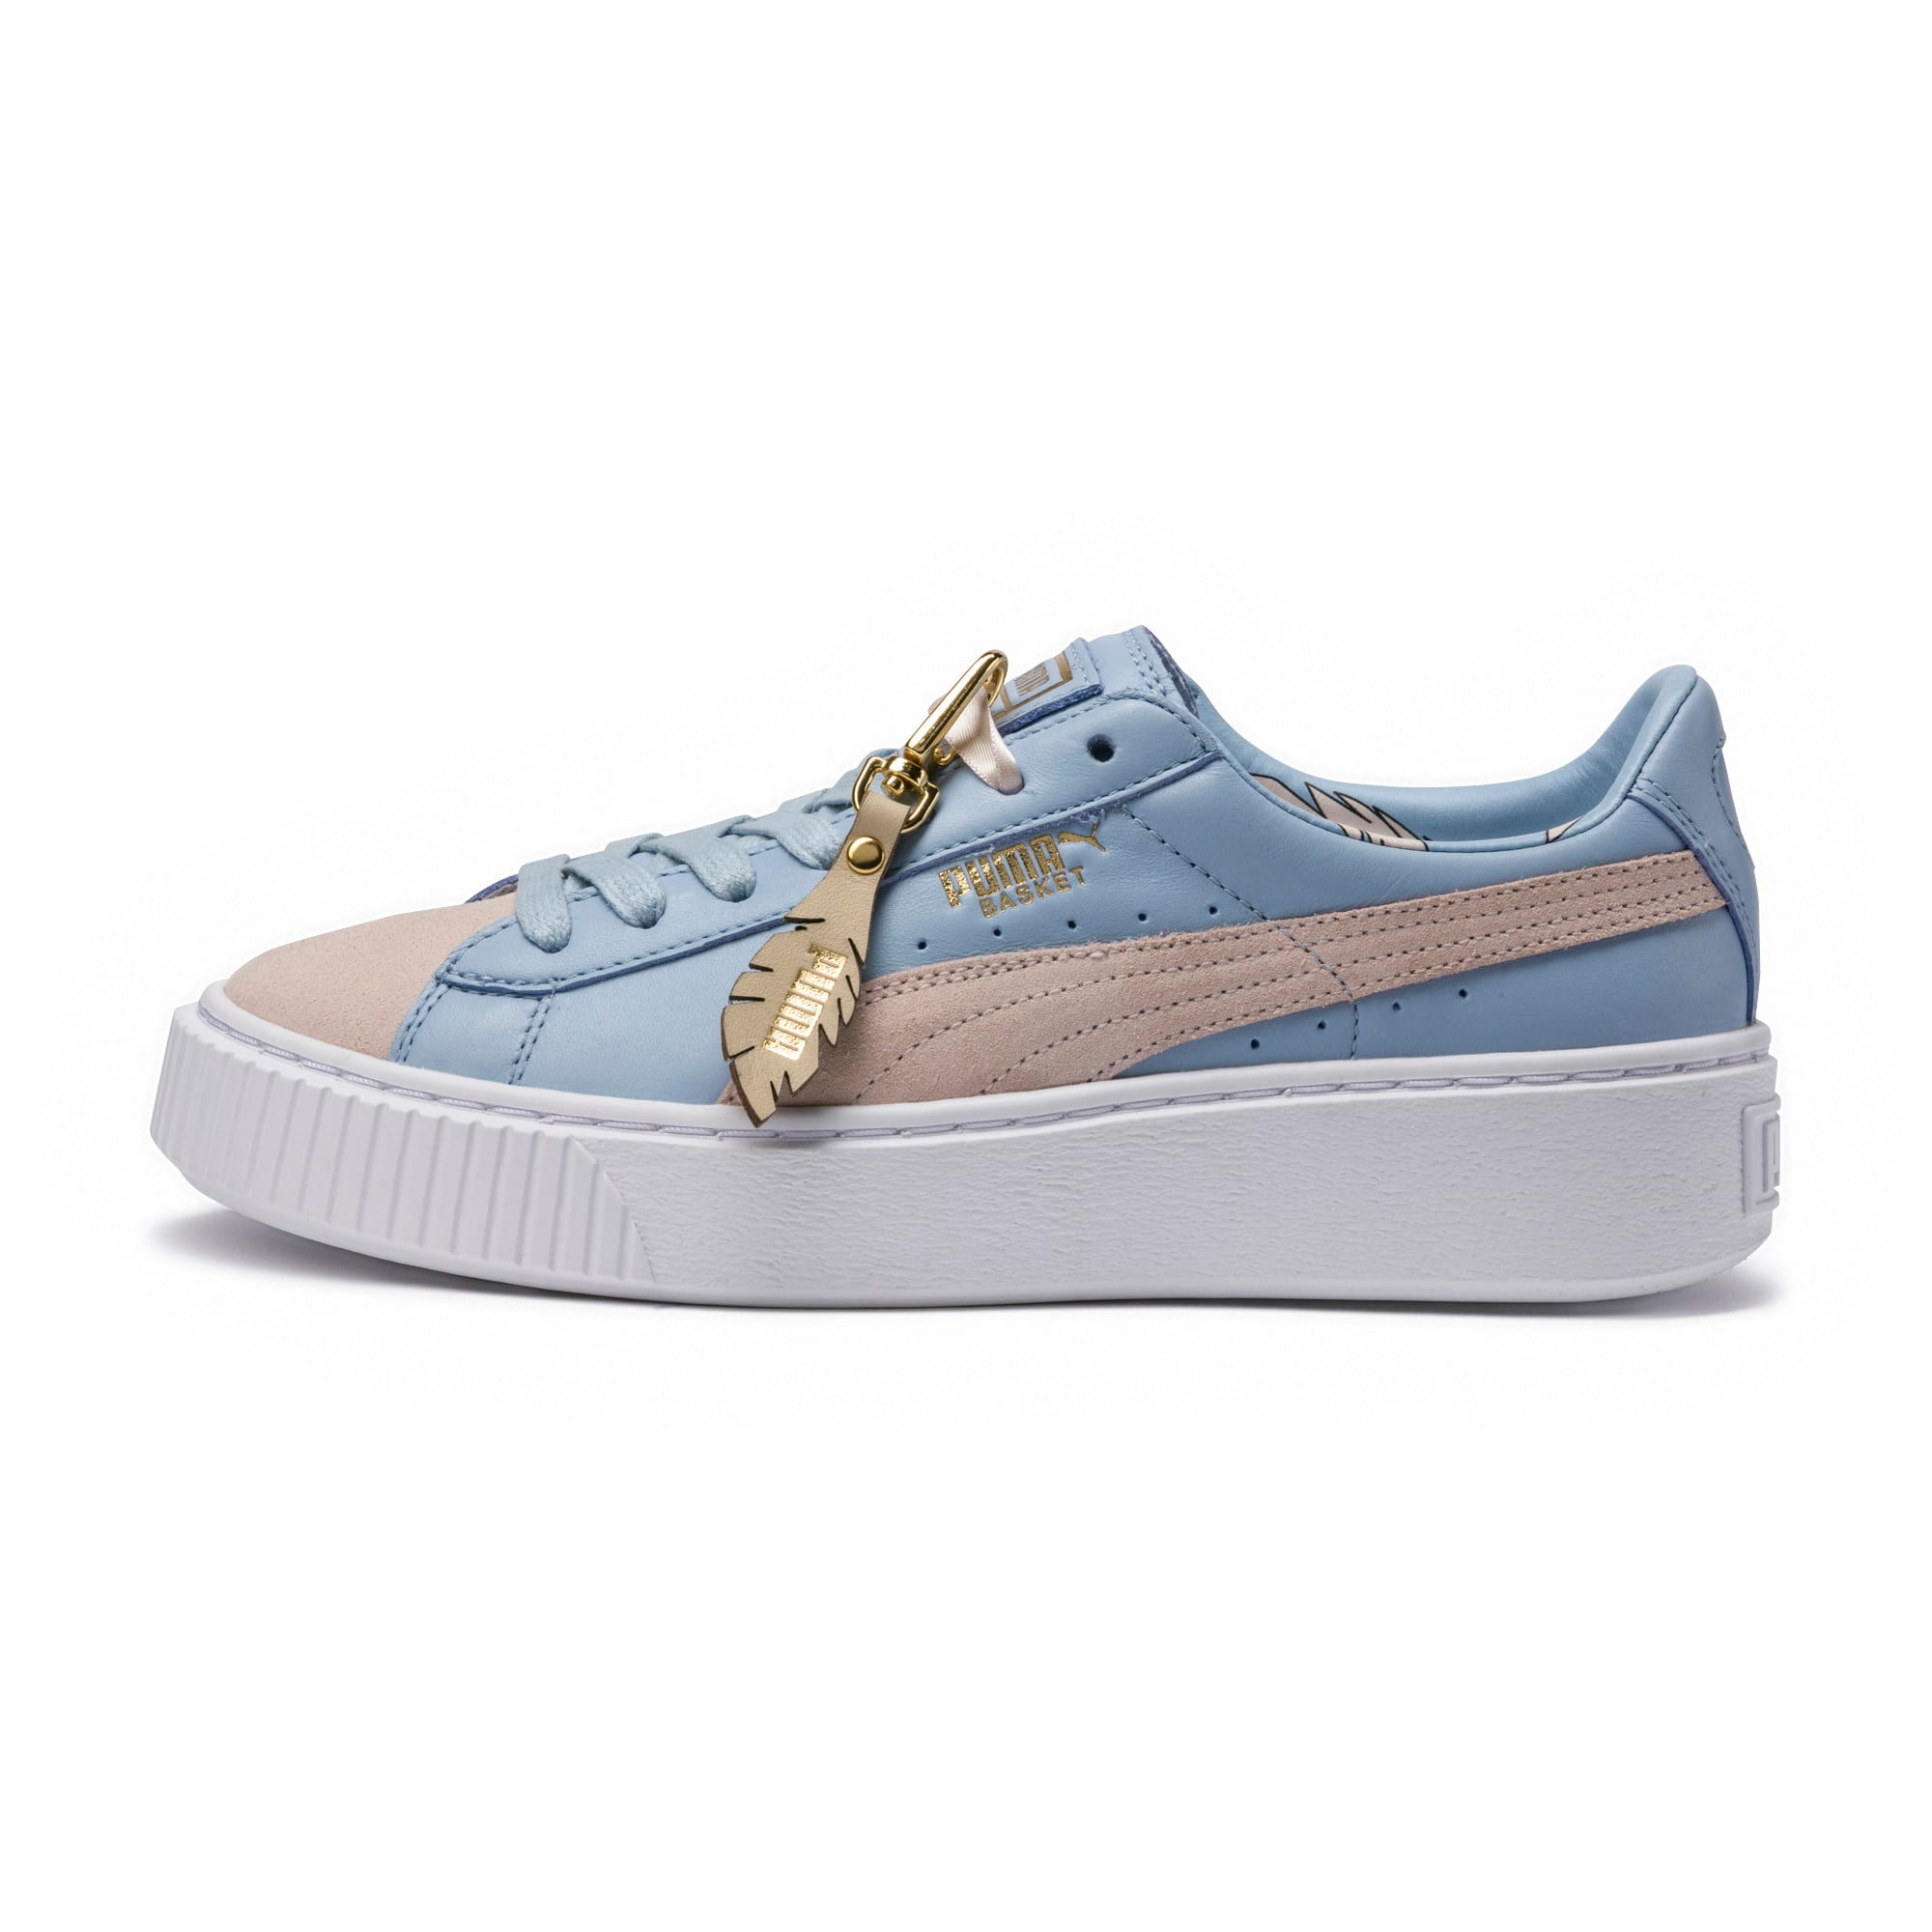 Thumbnail 6 of Basket Platform Coach Women's Trainers, Silver Peony-Cashmere Blue, medium-IND